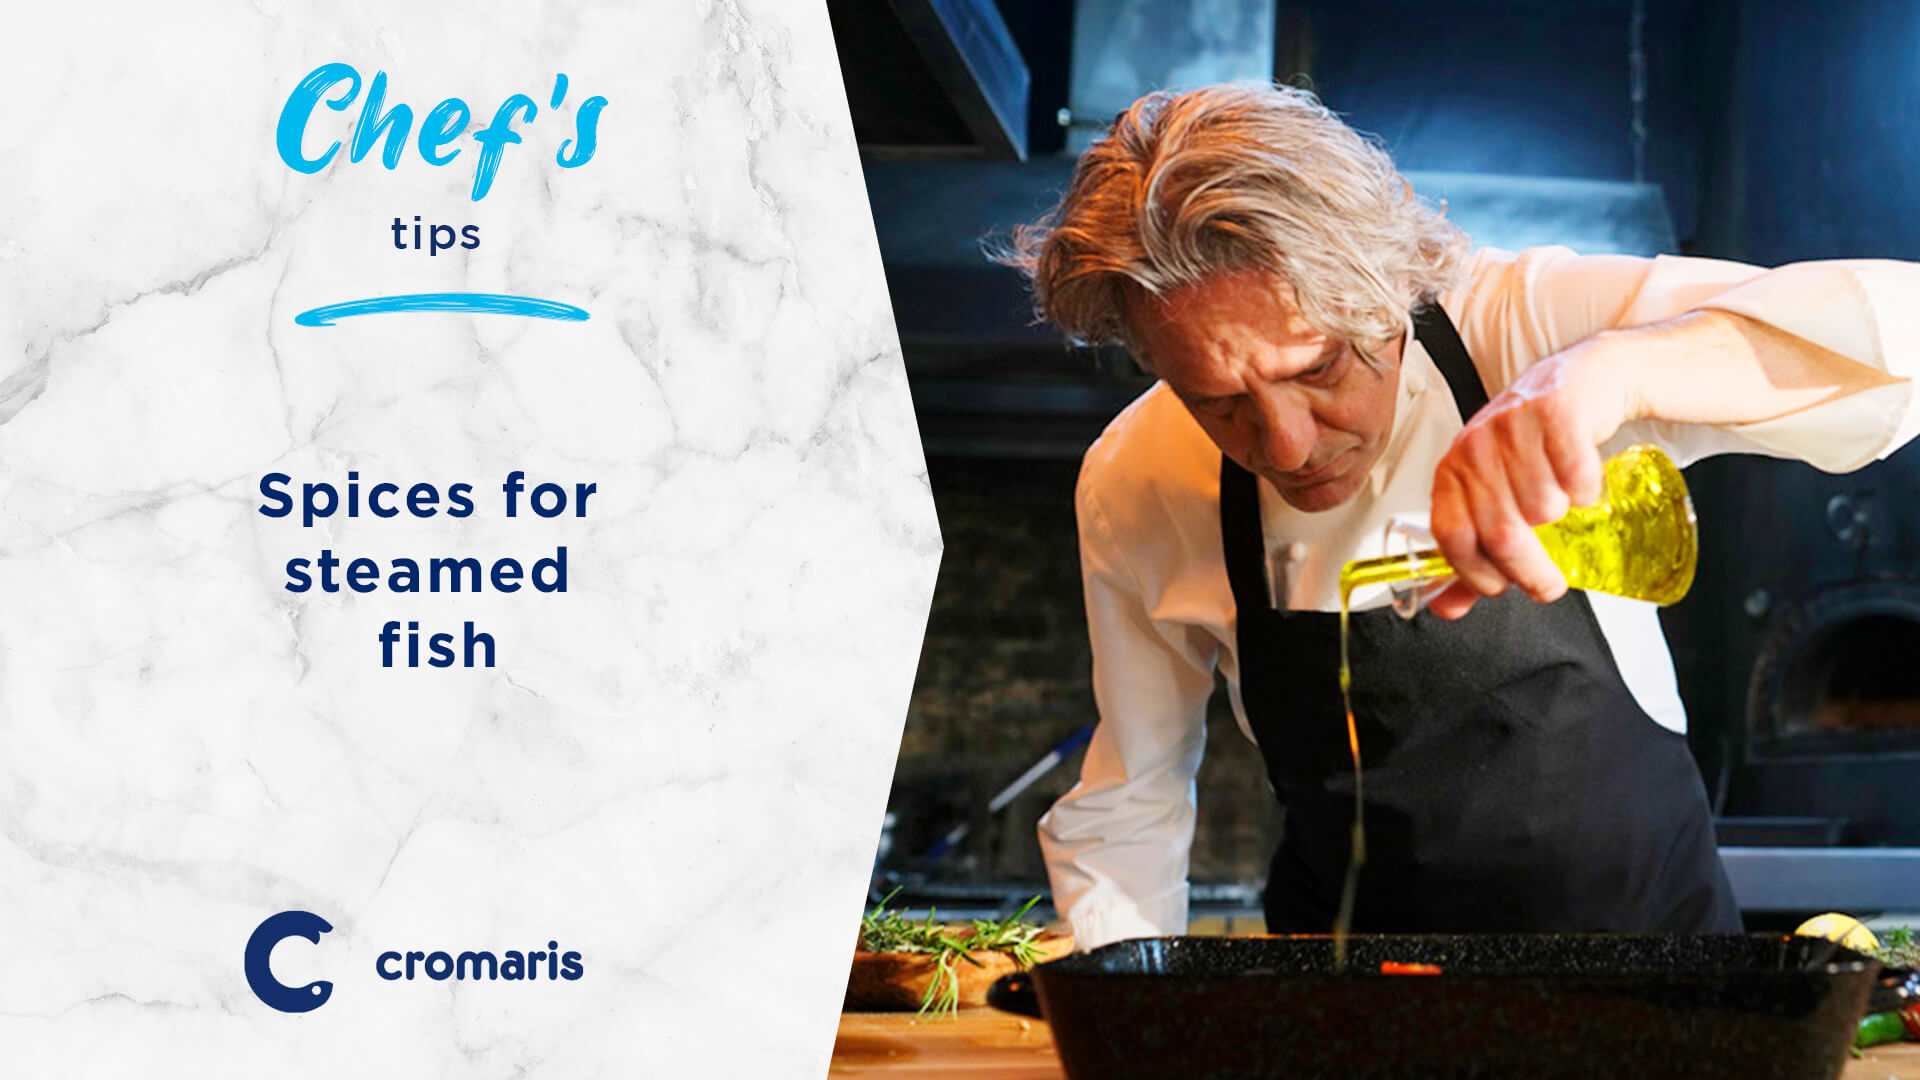 """""""To enhance the taste of steamed fish, I recommend creating a seasoning with oil, lemon juice, chopped onion, parsley, thyme and bay leaves, and marinating the fish with it for at least one hour and a half before cooking it."""""""